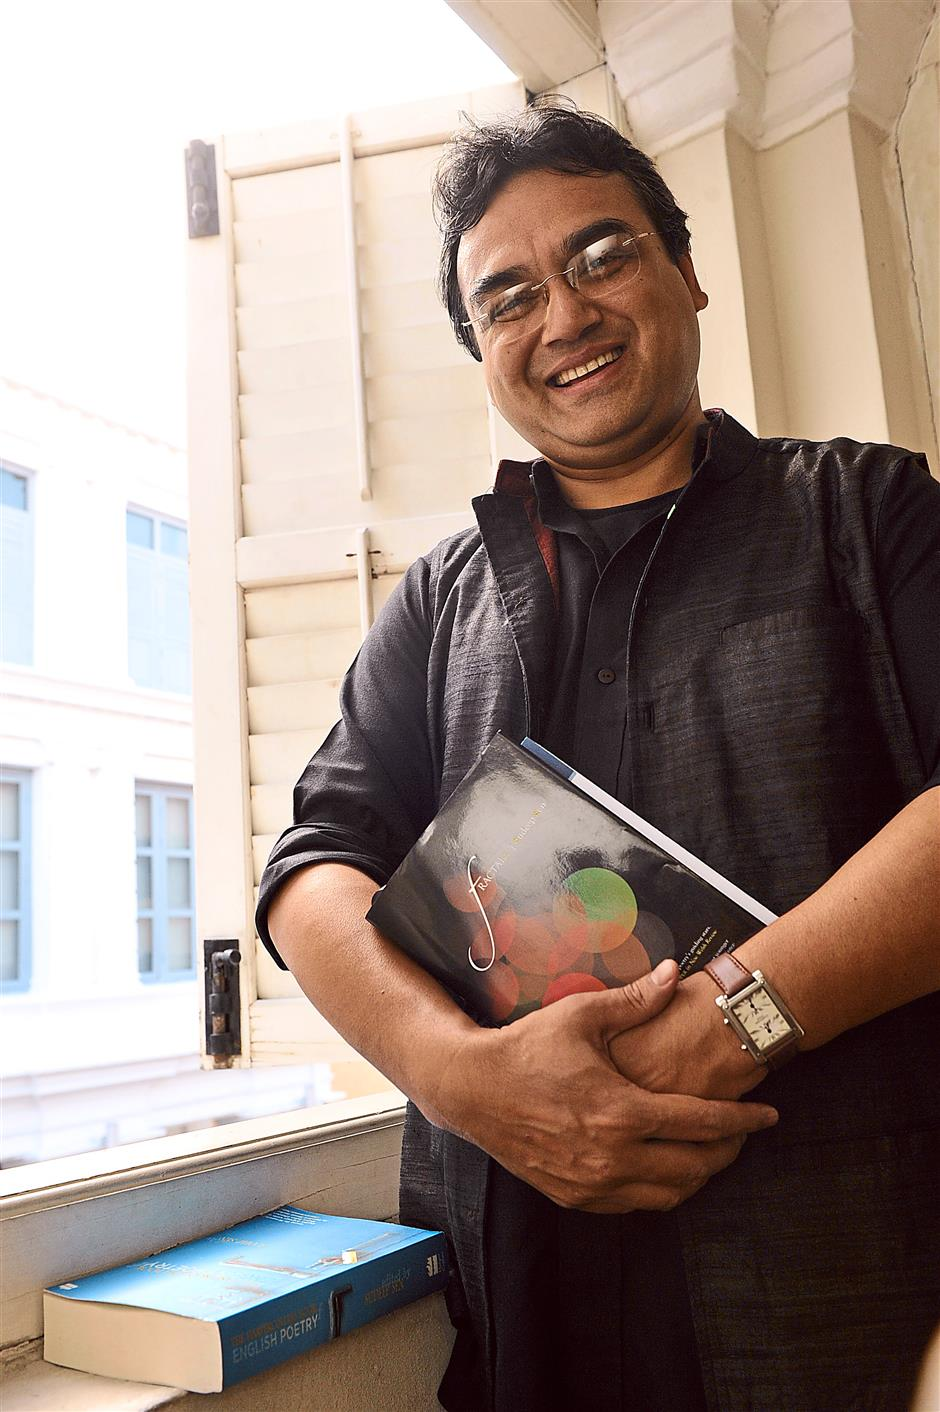 Multi award-wining poet Sudeep Sen feels 'very, very lucky to be involved in poetry' even if it's not something that is financially lucrative. – GARY CHEN/The Star